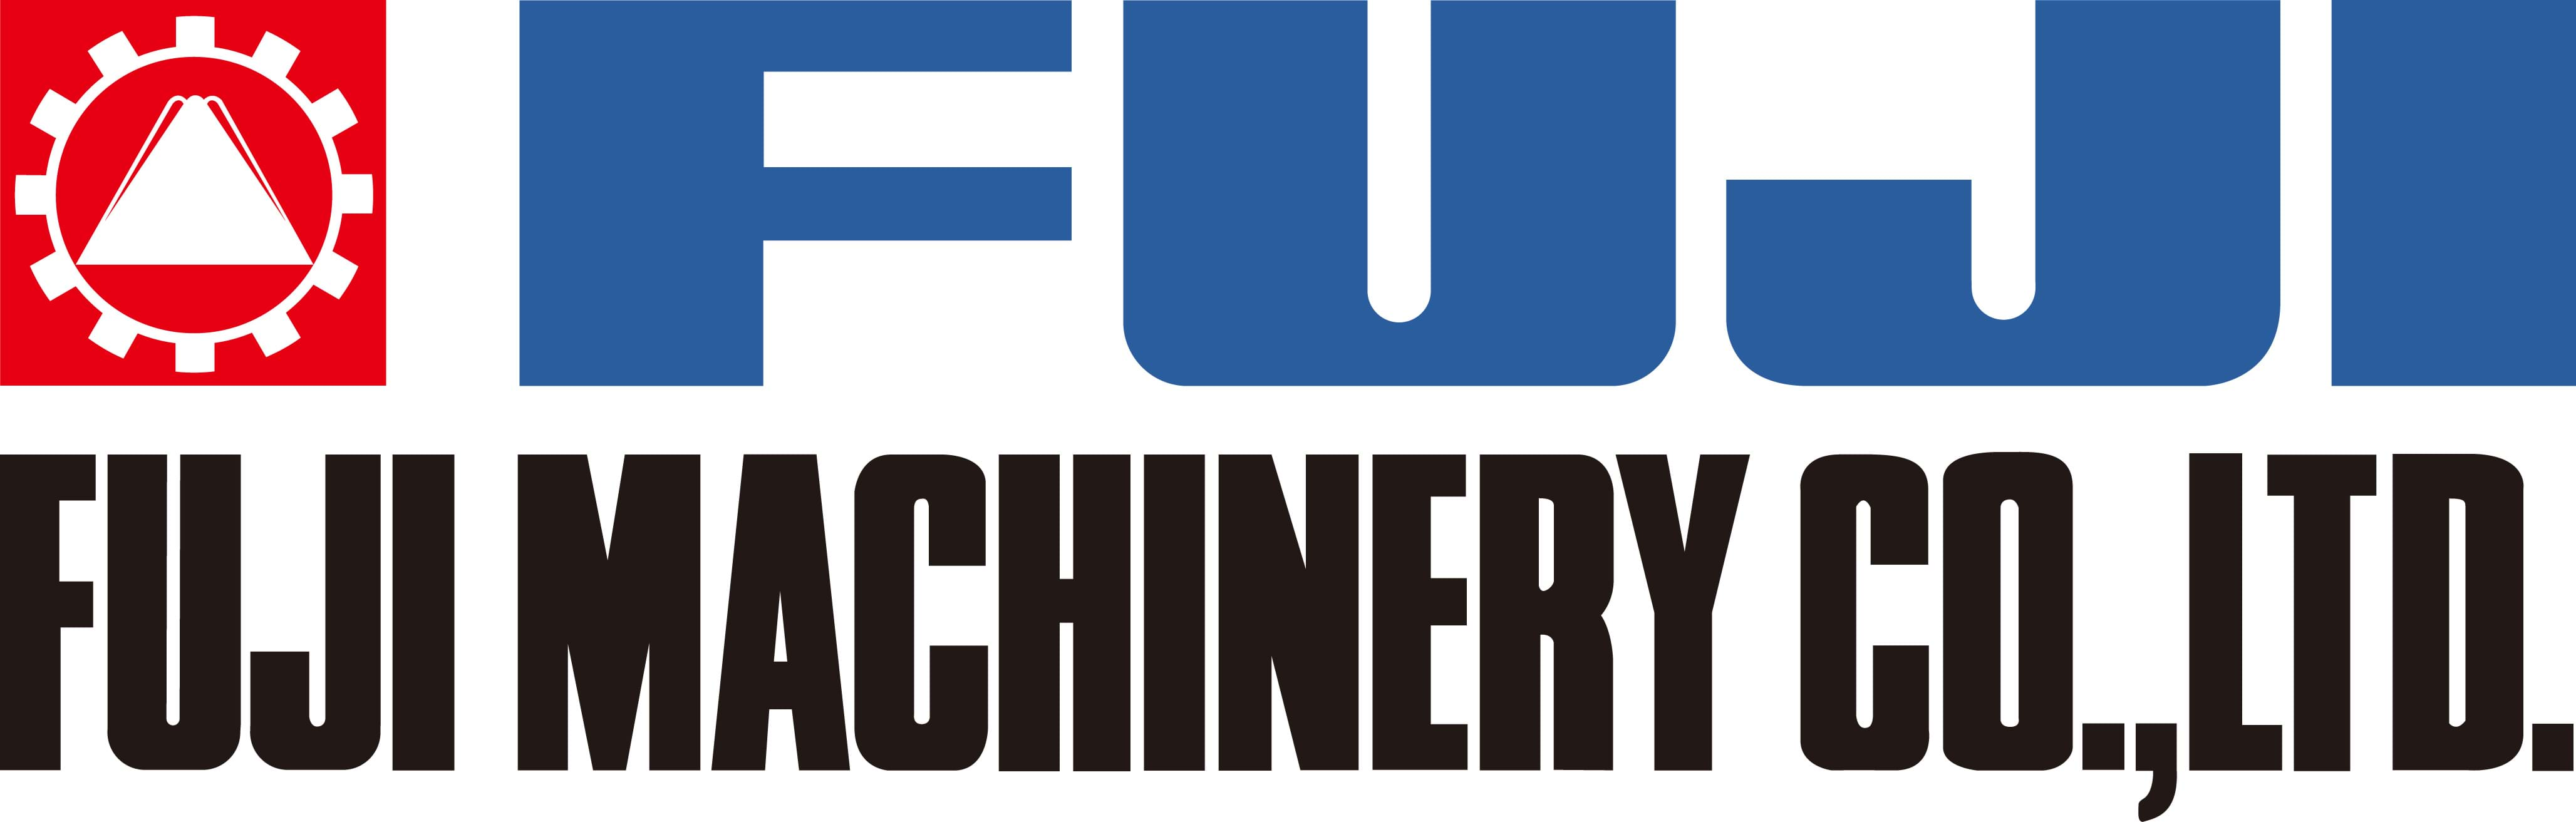 Fuji Machinery Co., LTD.